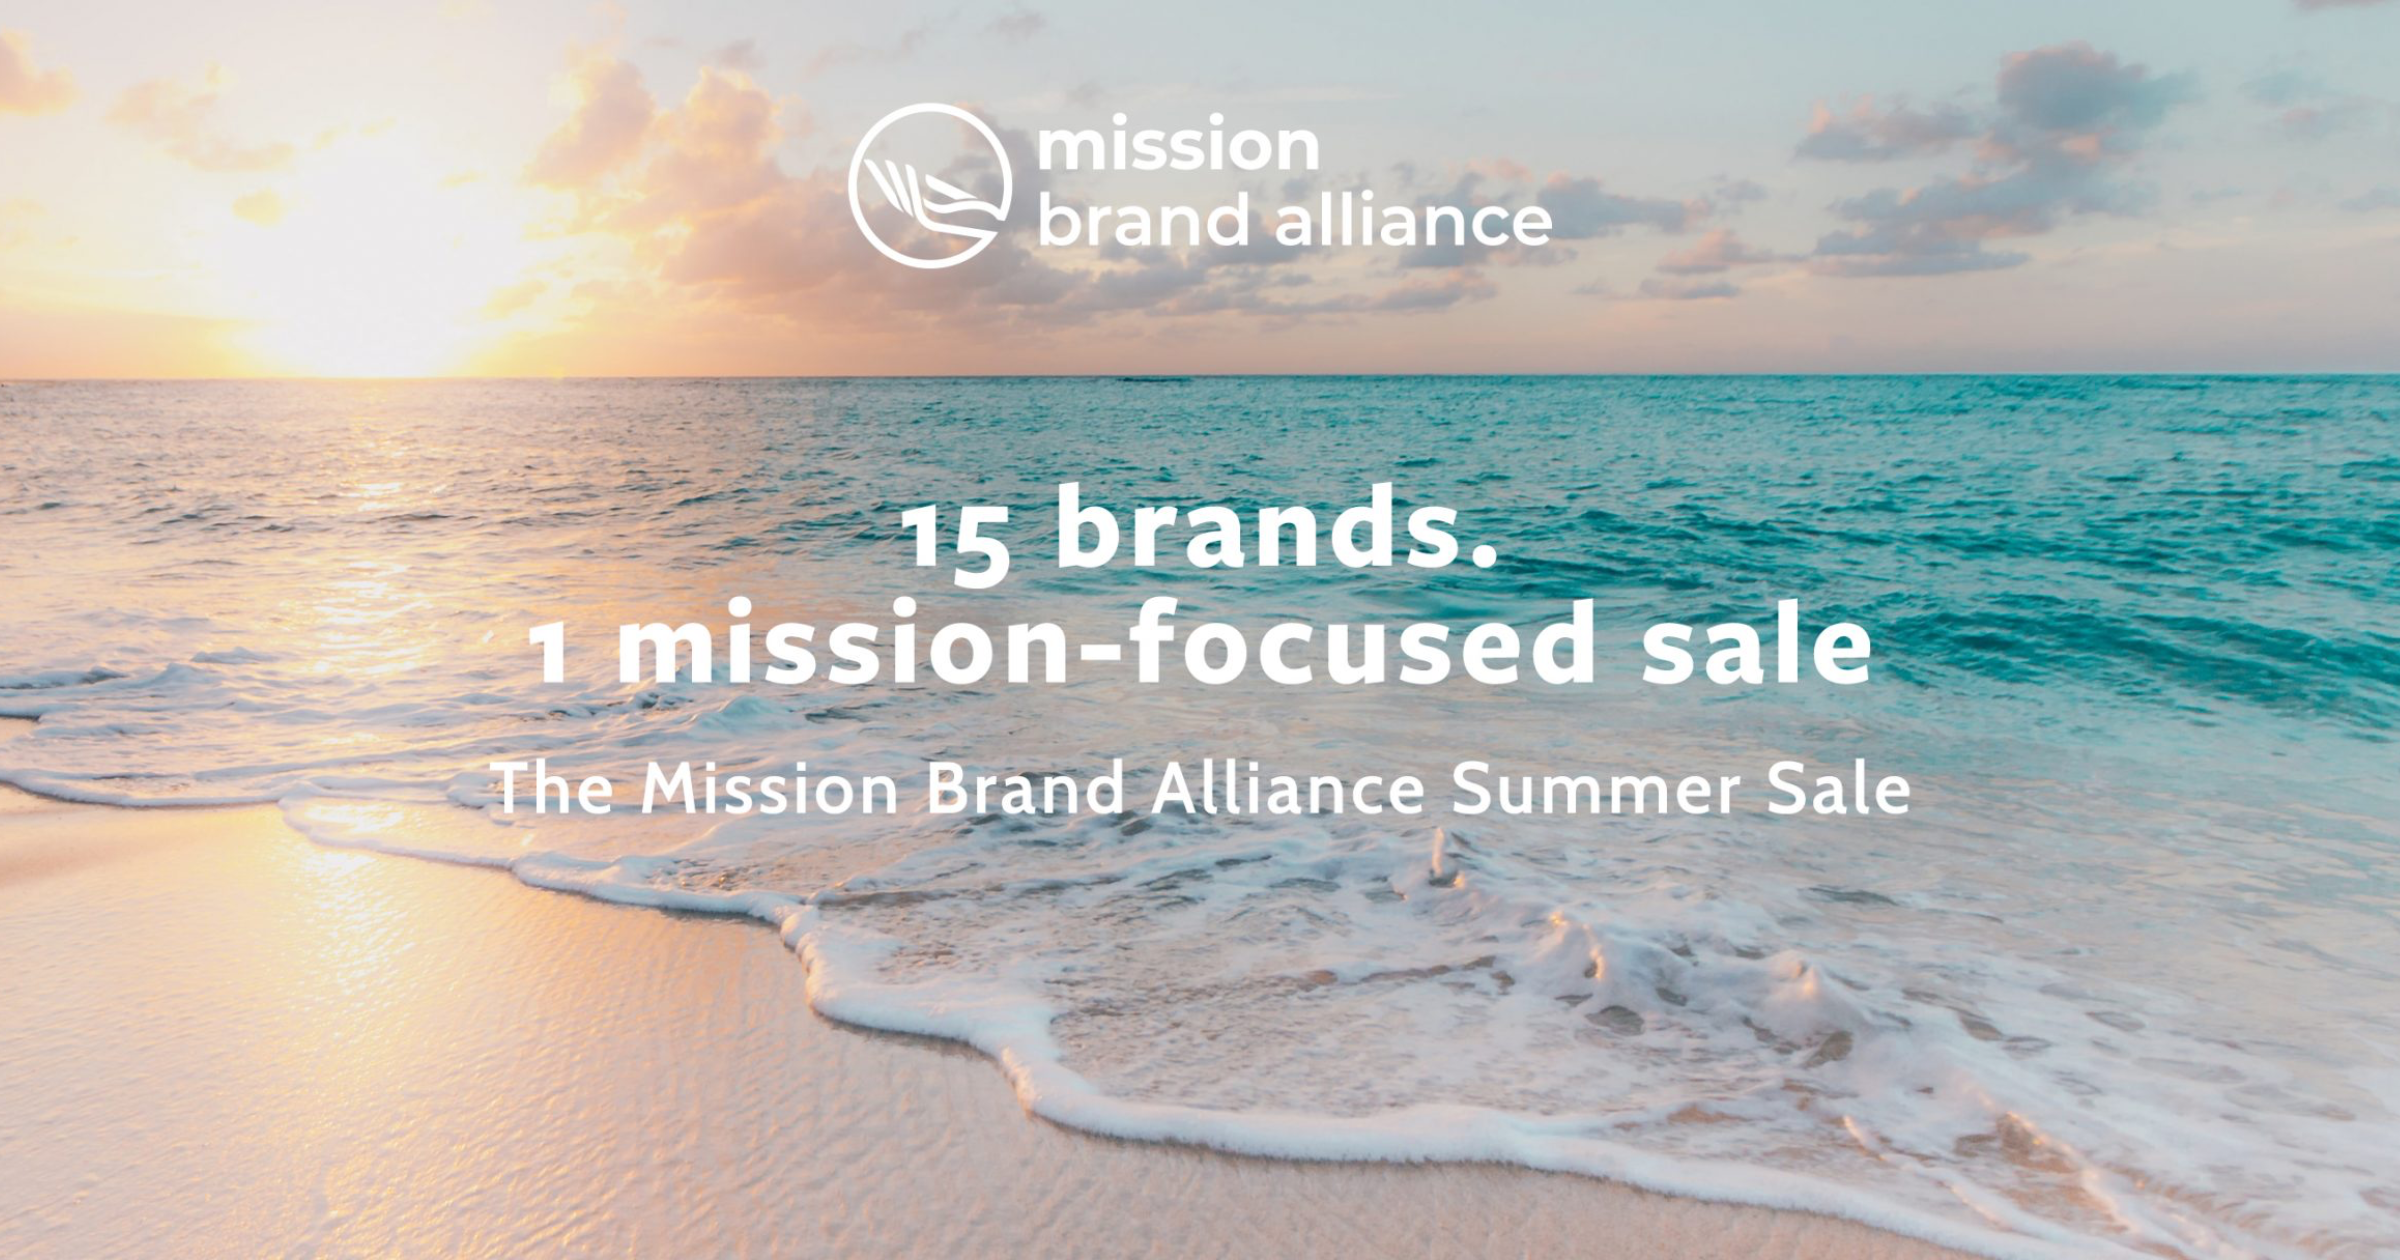 Nomad The Mission Brand Alliance